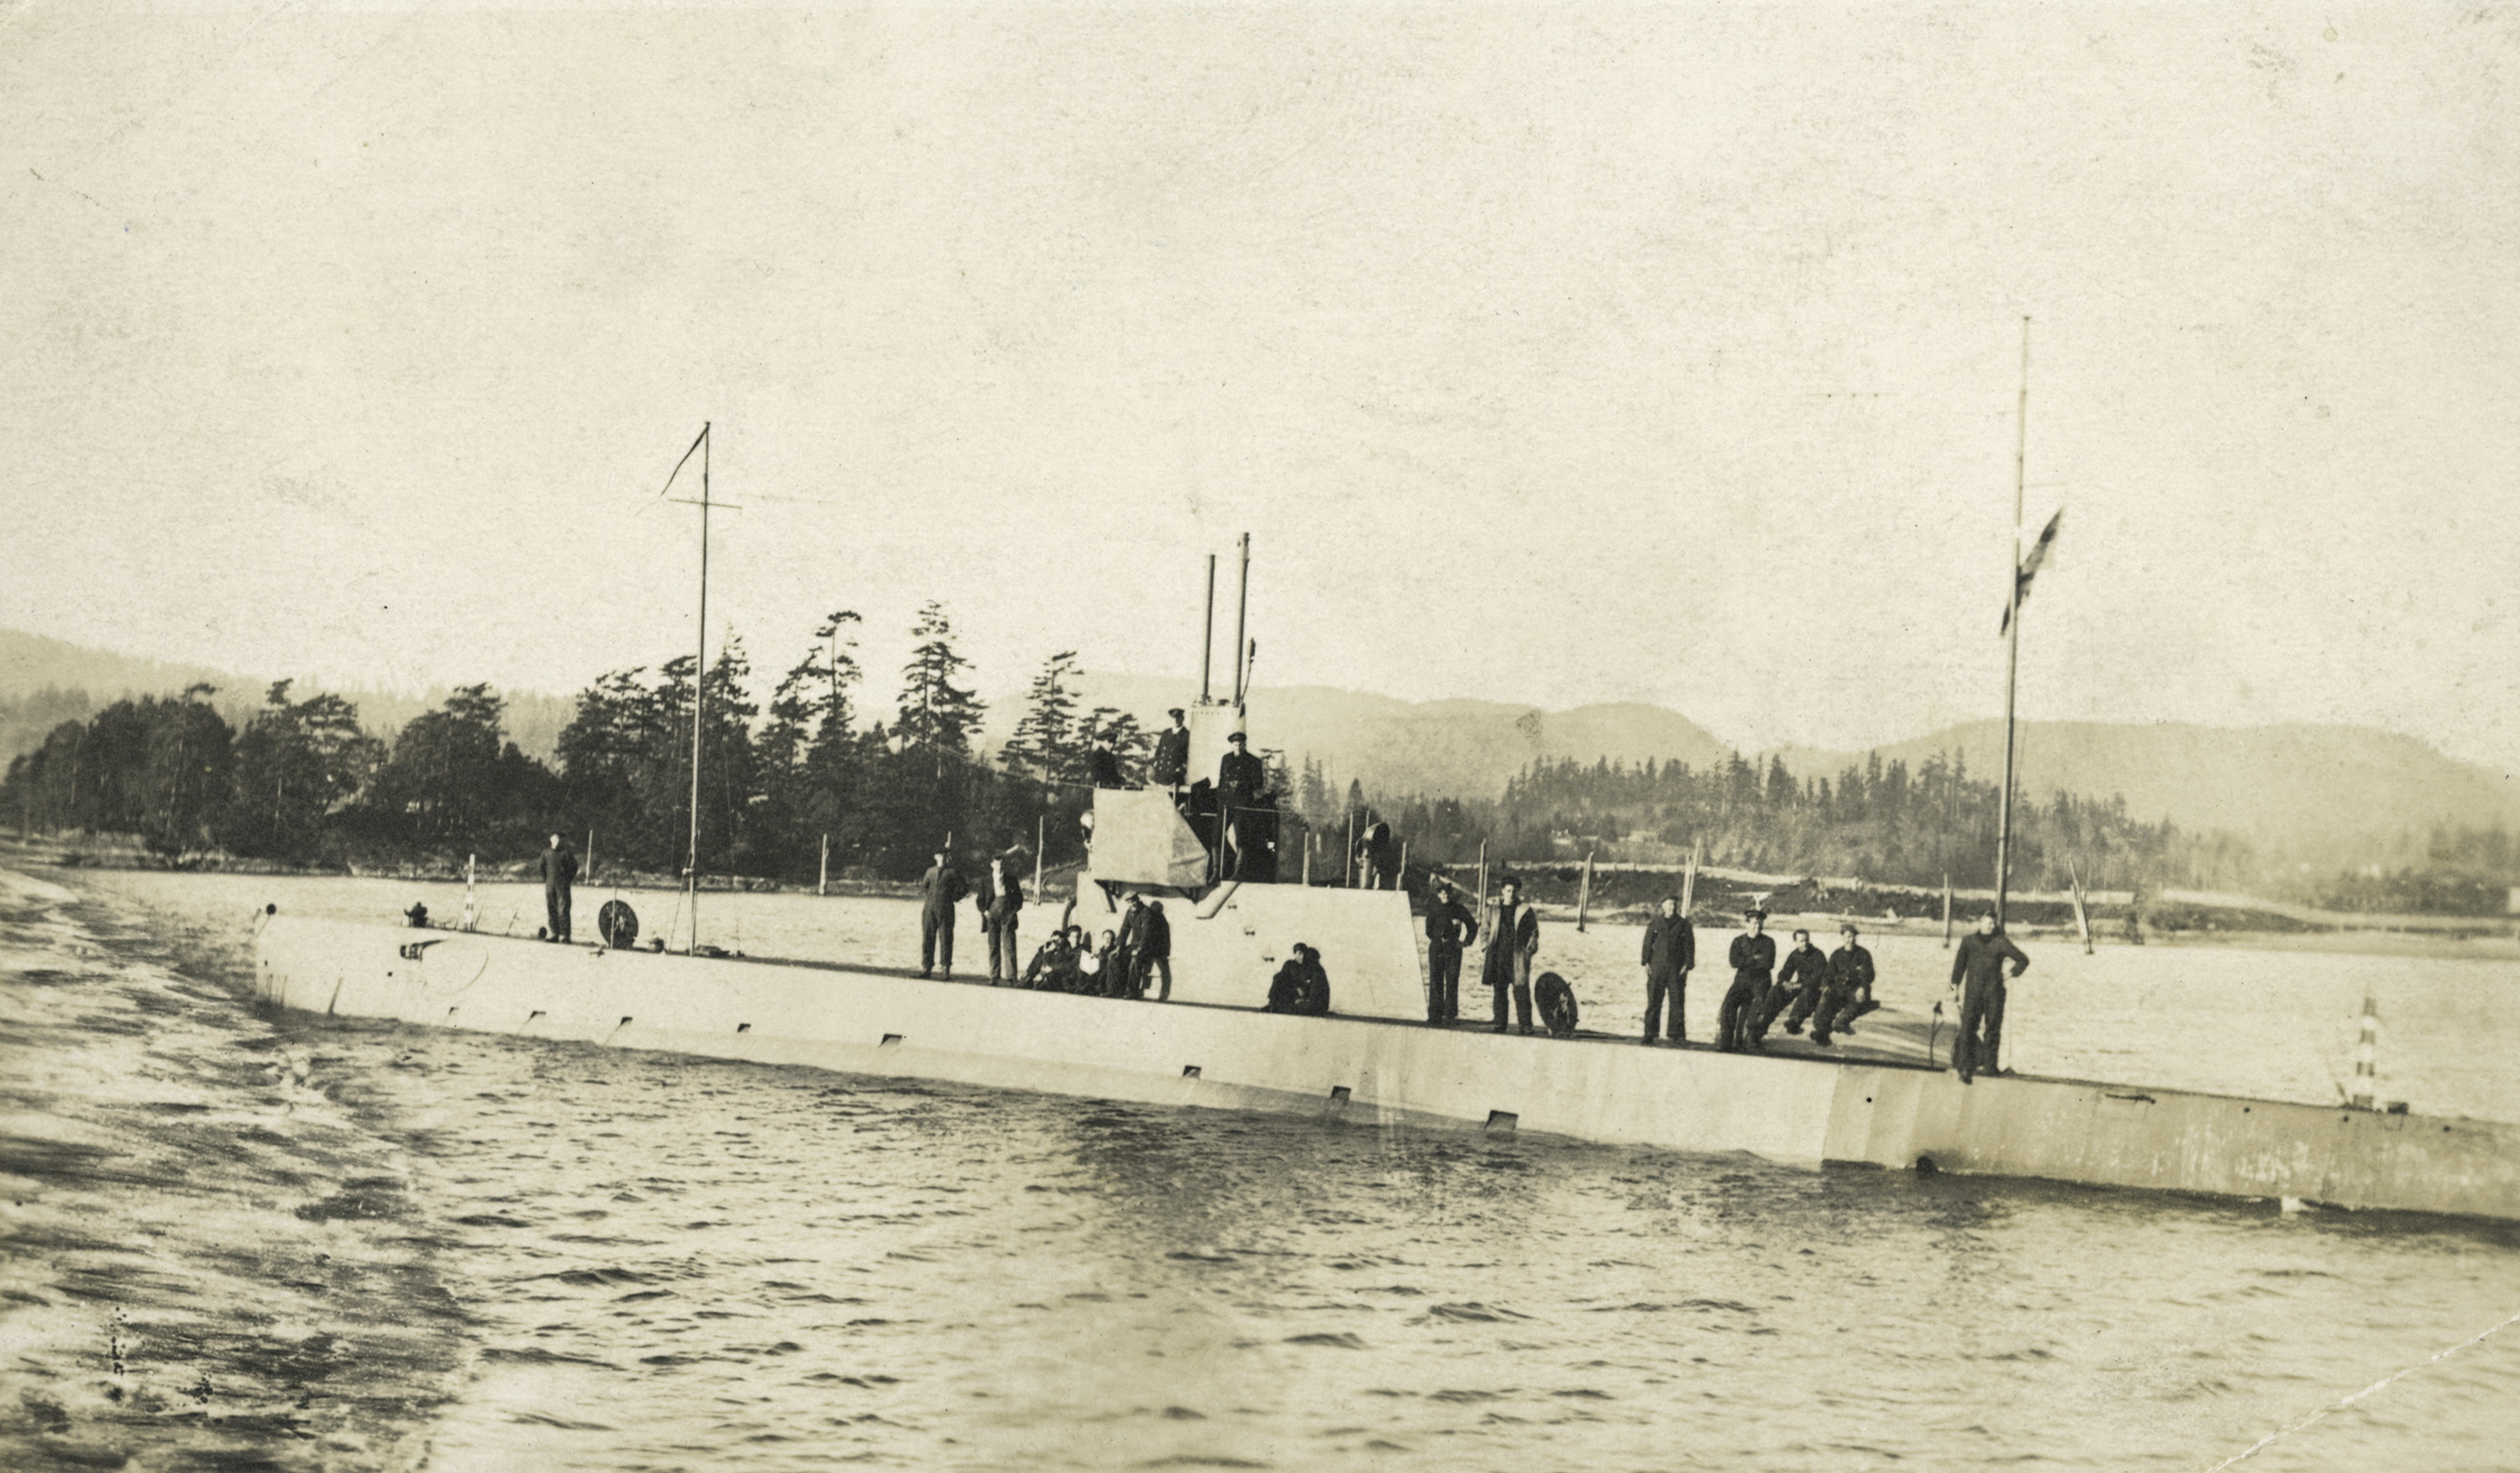 HMC Submarine No. 2 at Esquimalt.